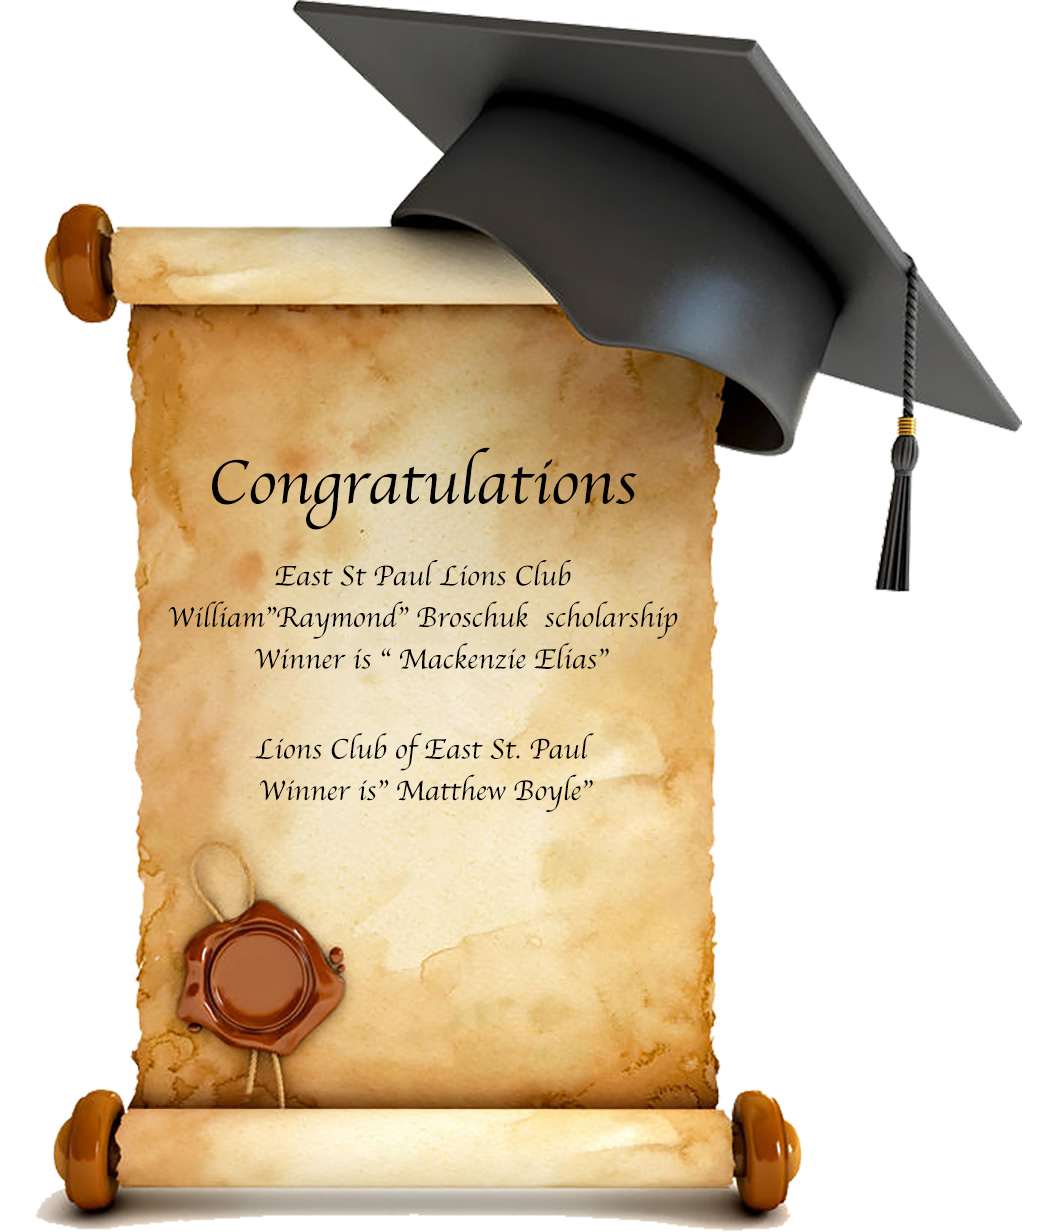 2018 Lions Club of East St. Paul Scholarships